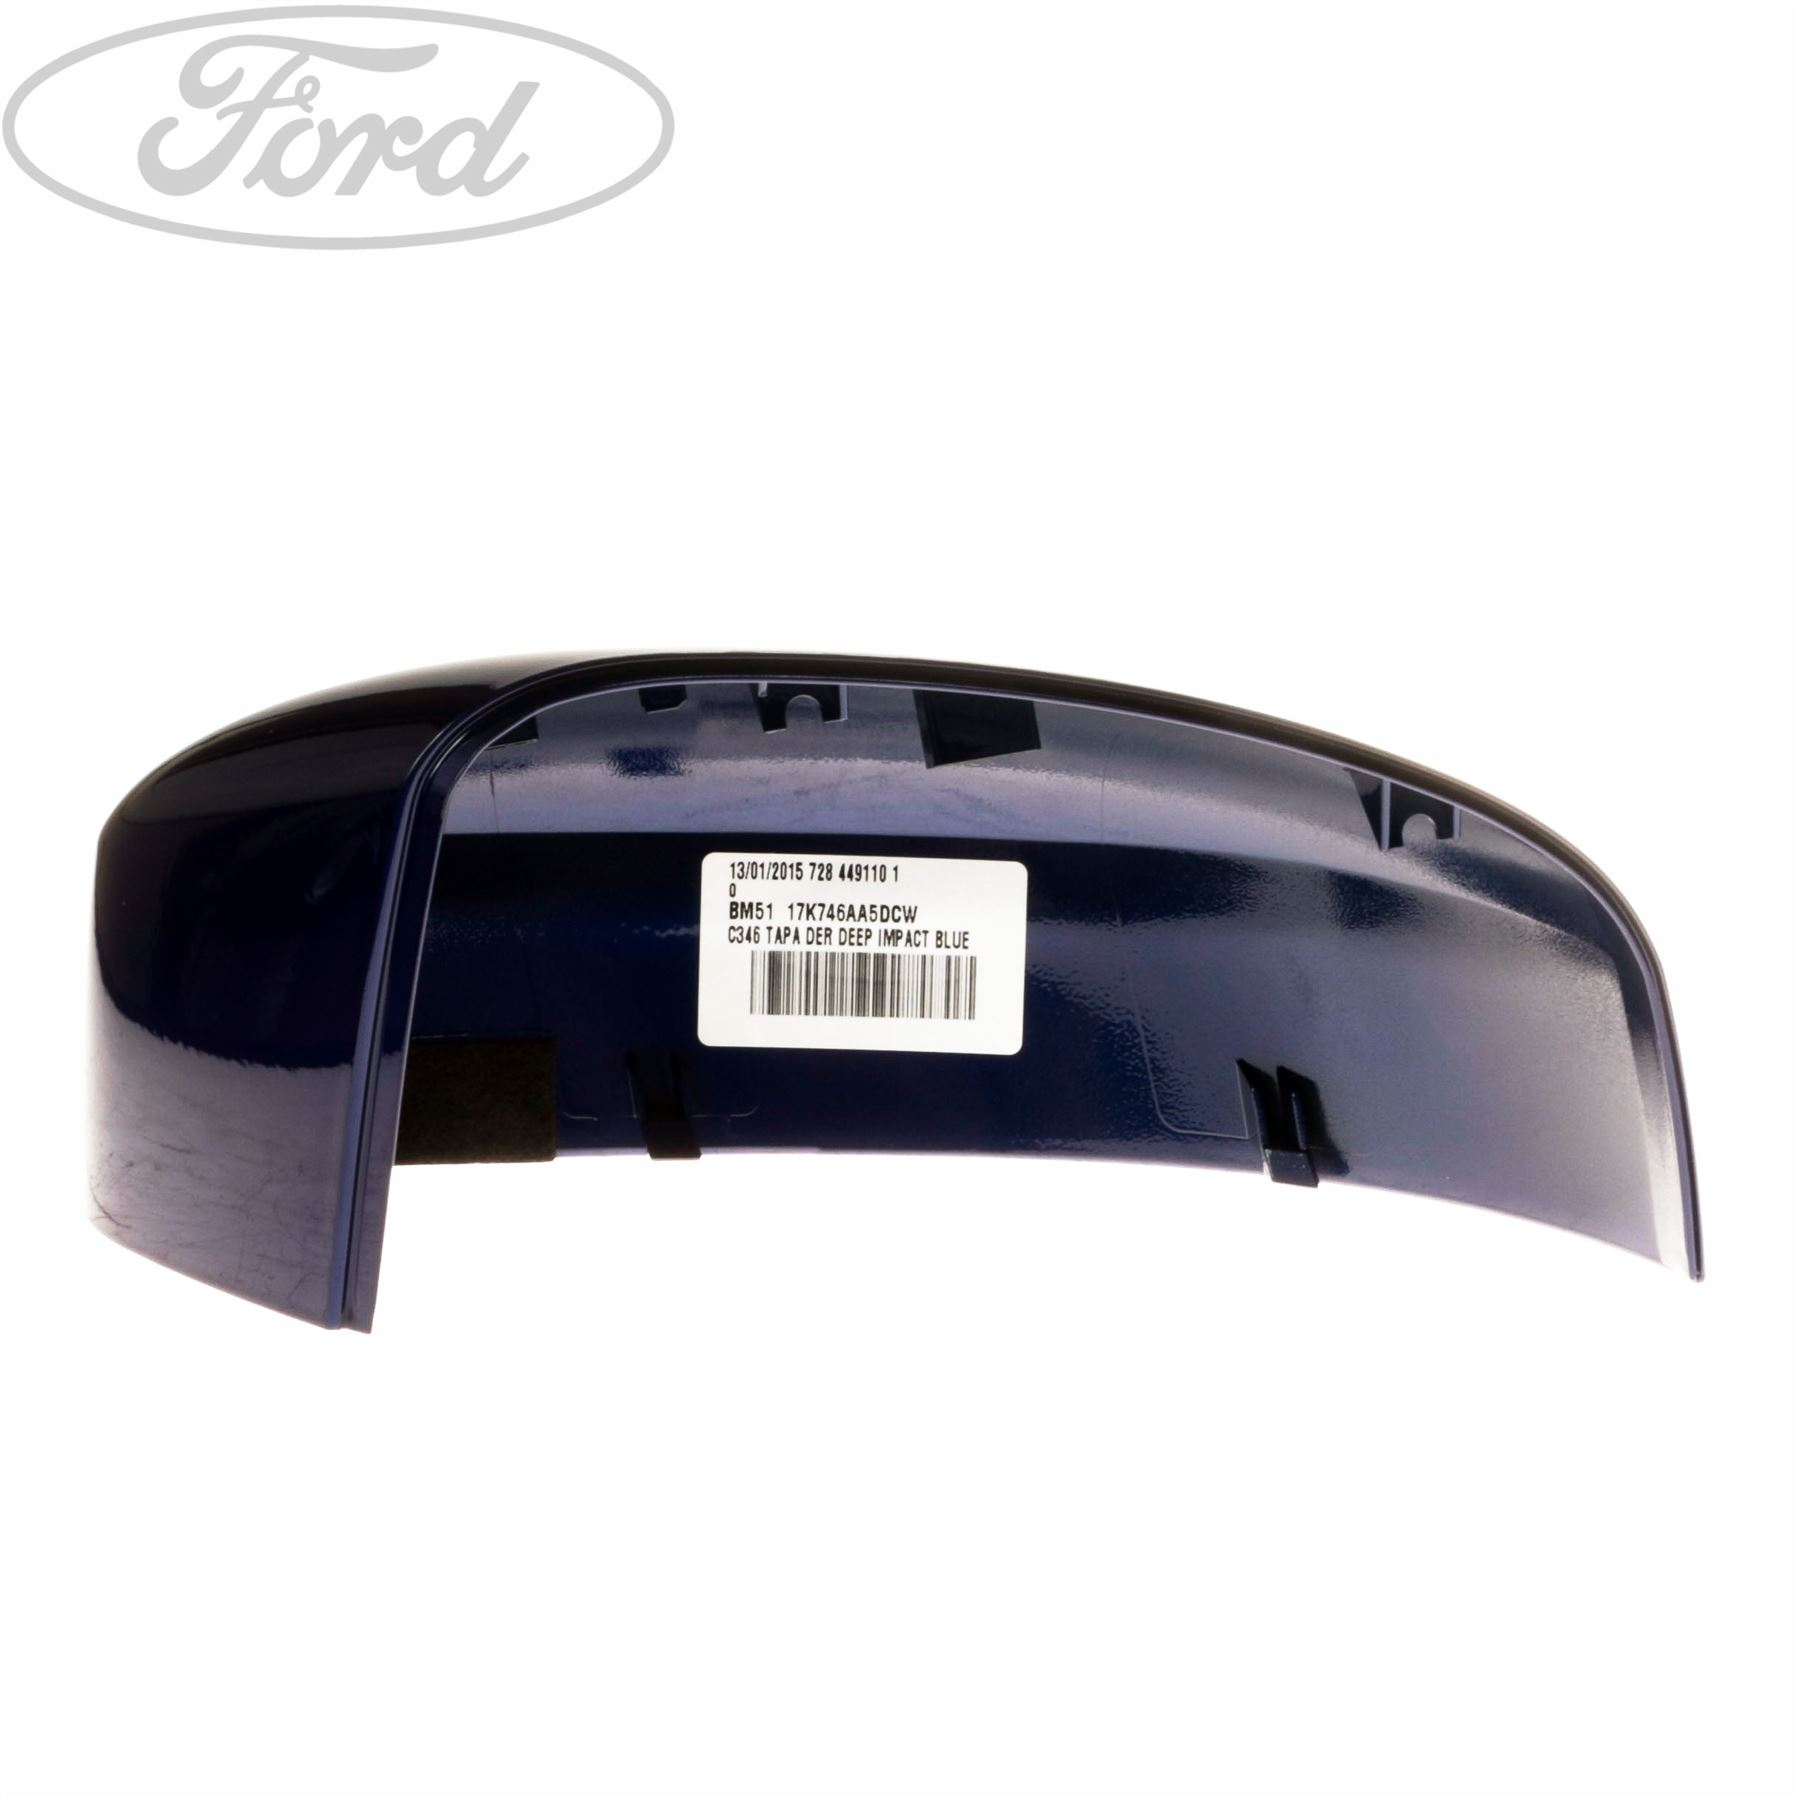 genuine ford focus mk3 front o s right wing mirror housing cap cover rh ebay co uk